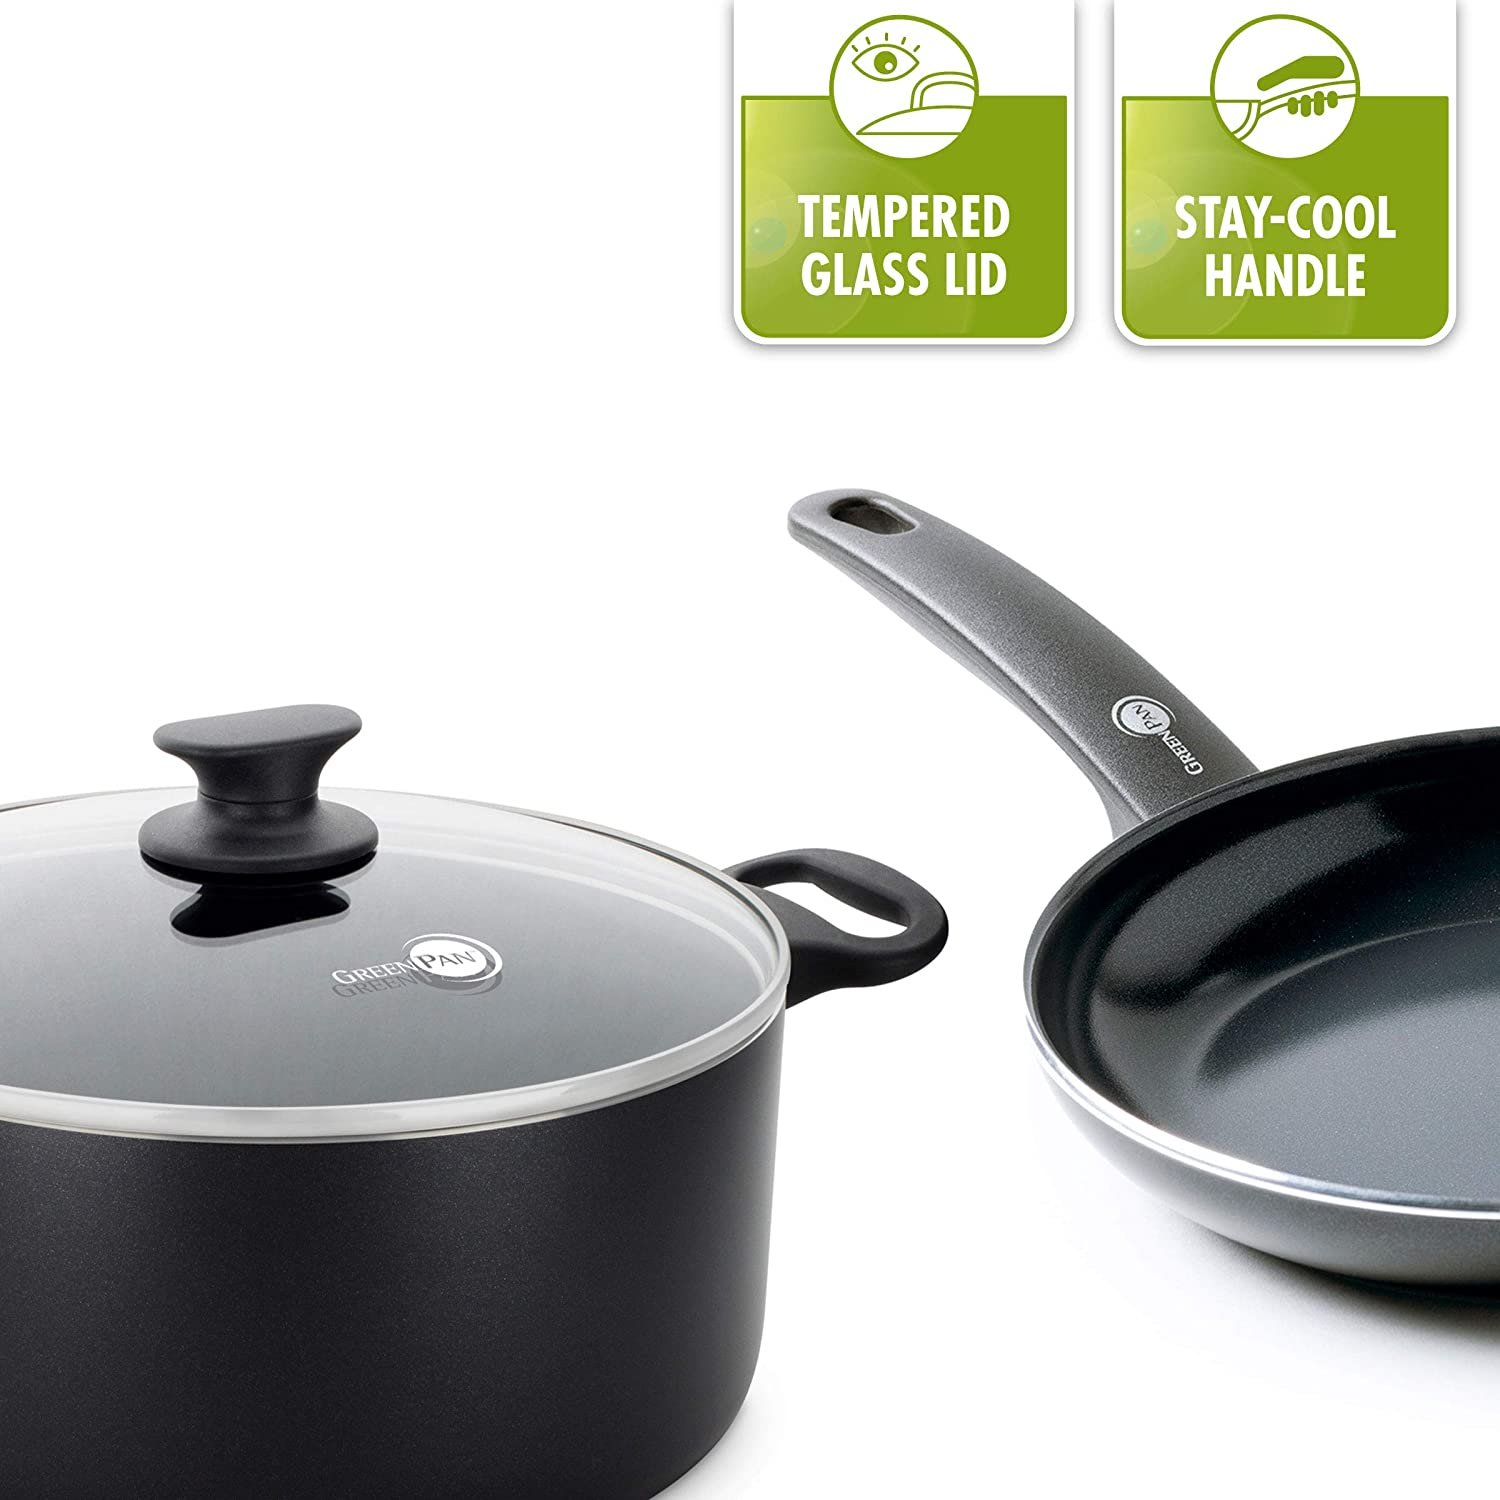 4f6a20d46fc4 GreenPan CW002211-003 Cambridge 100% ToxinFree Healthy Ceramic Nonstick  Metal Utensil/Induction/Dishwasher/OvenSafe Frying Pan - 20cm - Black:  Amazon.co.uk: ...